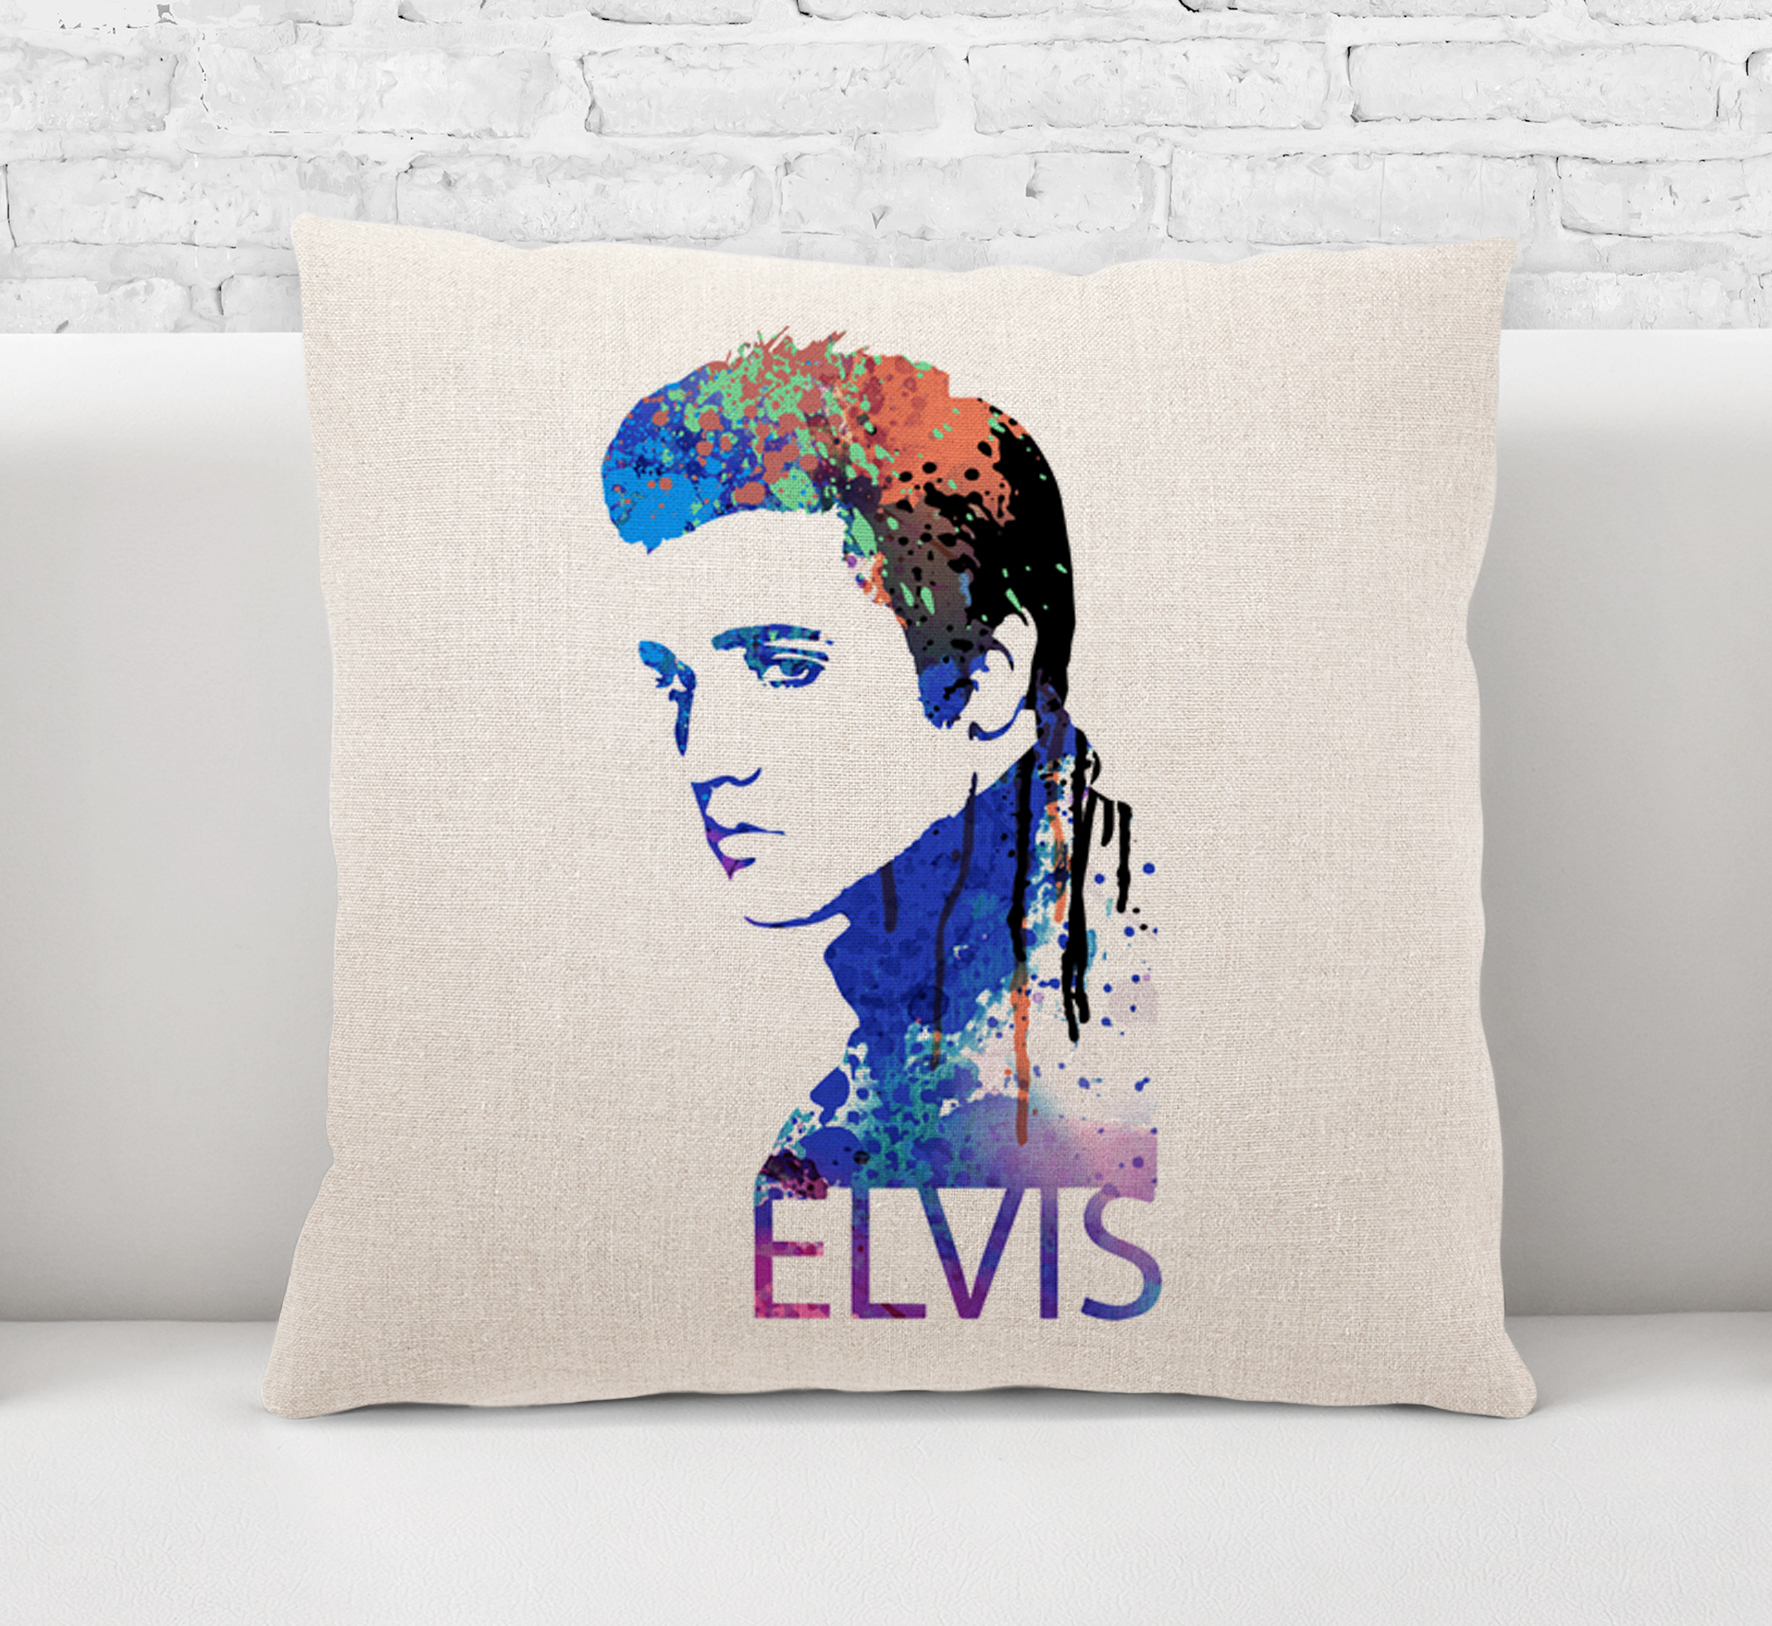 Throw Pillow CaseCushion Cover Elvis Presley Rock And RollRock MusicLegend-50s Singer Painting Art 0488